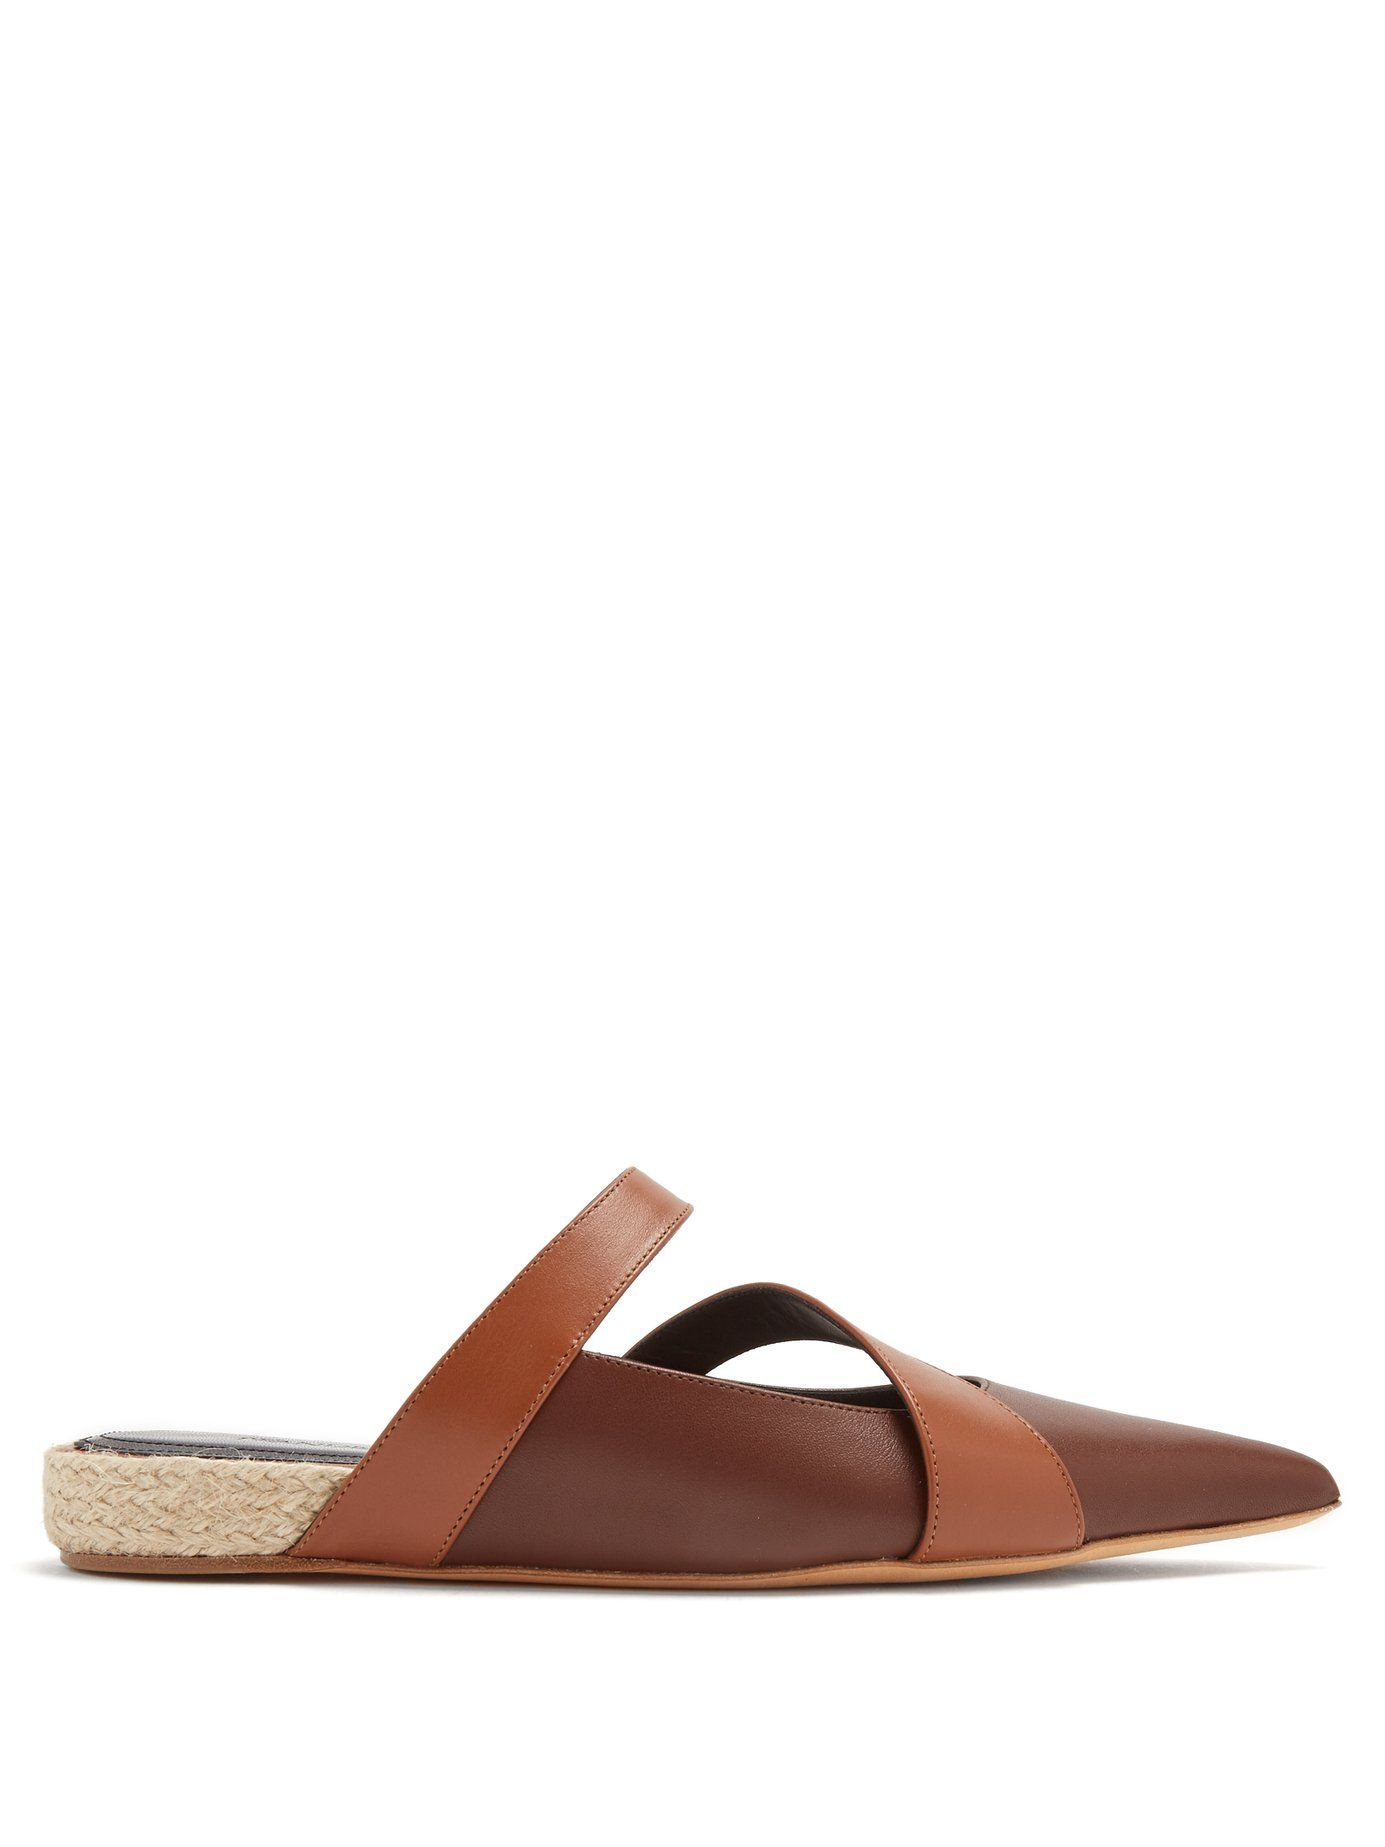 J.W.Anderson Point-toe leather backless ballet flats Shop For Cheap Price kXZKDz8j4